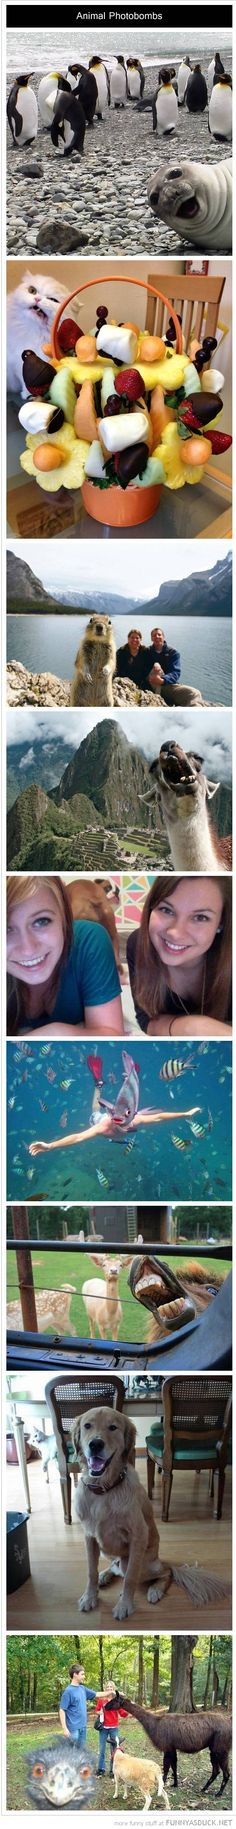 Animals do the best photo bombs. These seriously make me laugh EVERY time! Lol - Horses Funny - Funny Horse Meme - - The post Animals do the best photo bombs. These seriously make me laugh EVERY time! Lol appeared first on Gag Dad. Cute Funny Animals, Funny Animal Pictures, Funny Cute, Funny Photos, Super Funny, Scary Funny, Funniest Pictures, Creepy, Lol